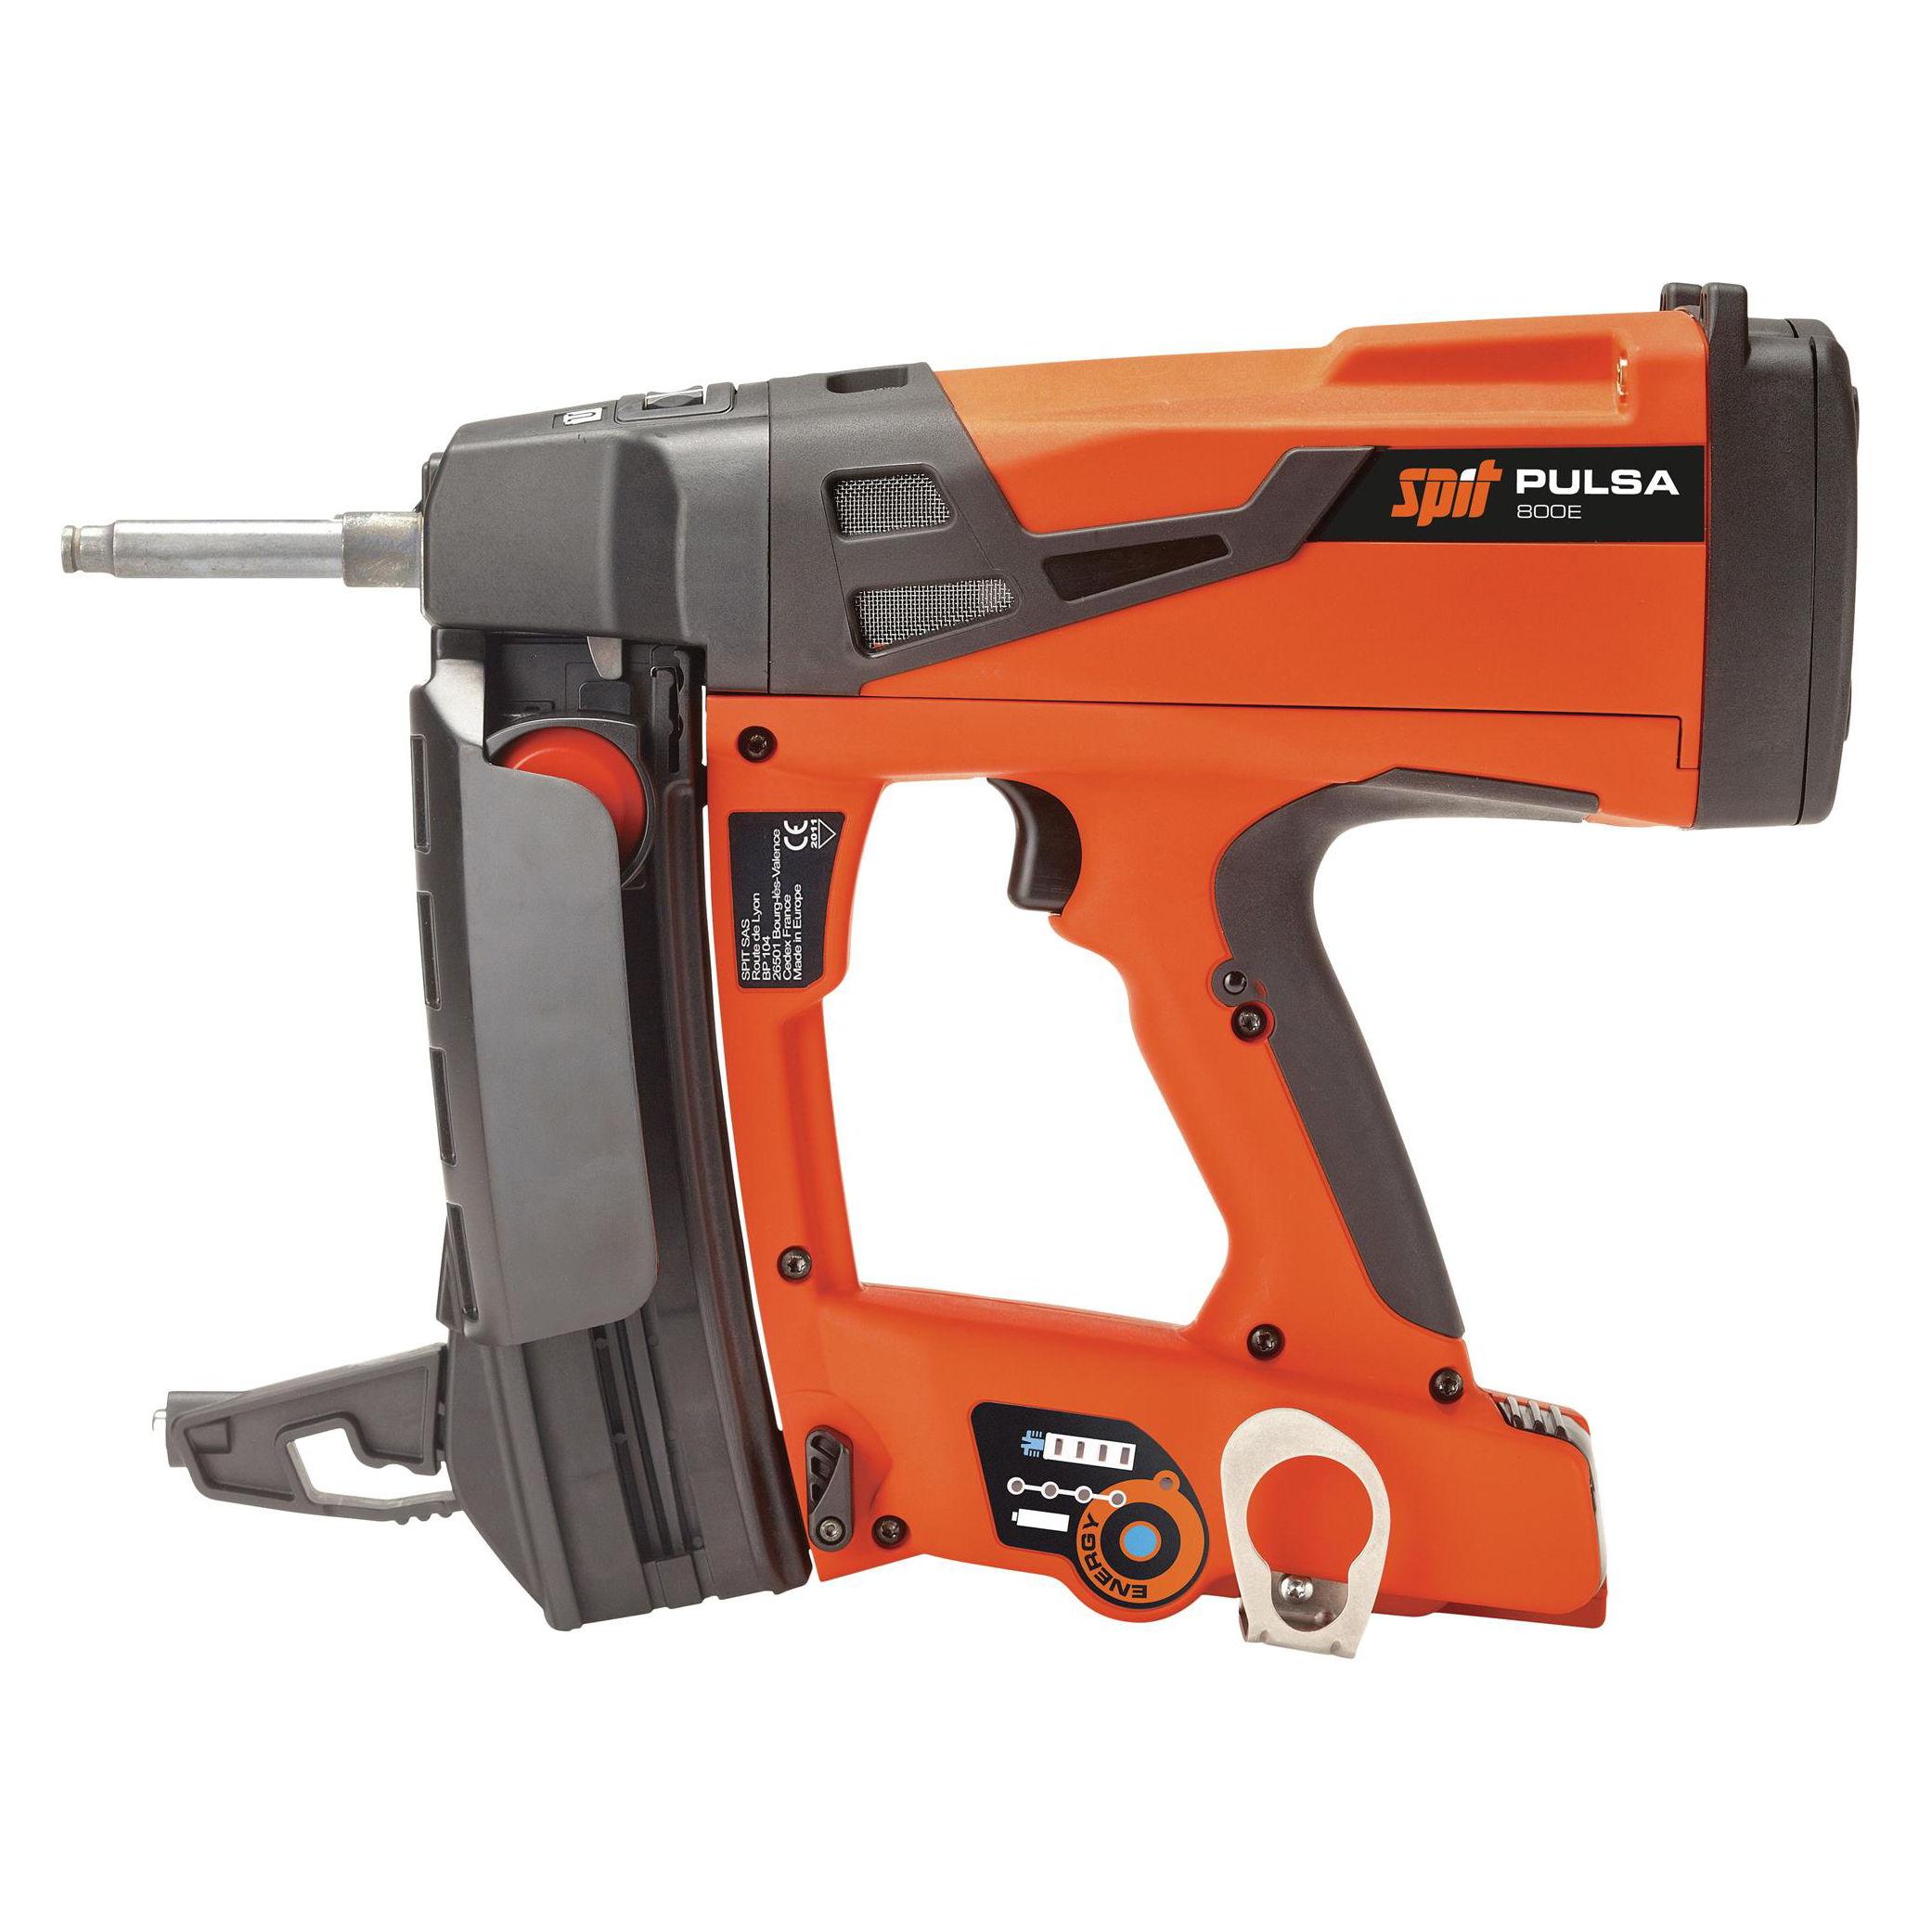 Gas Nail Guns (Gas Nailers)